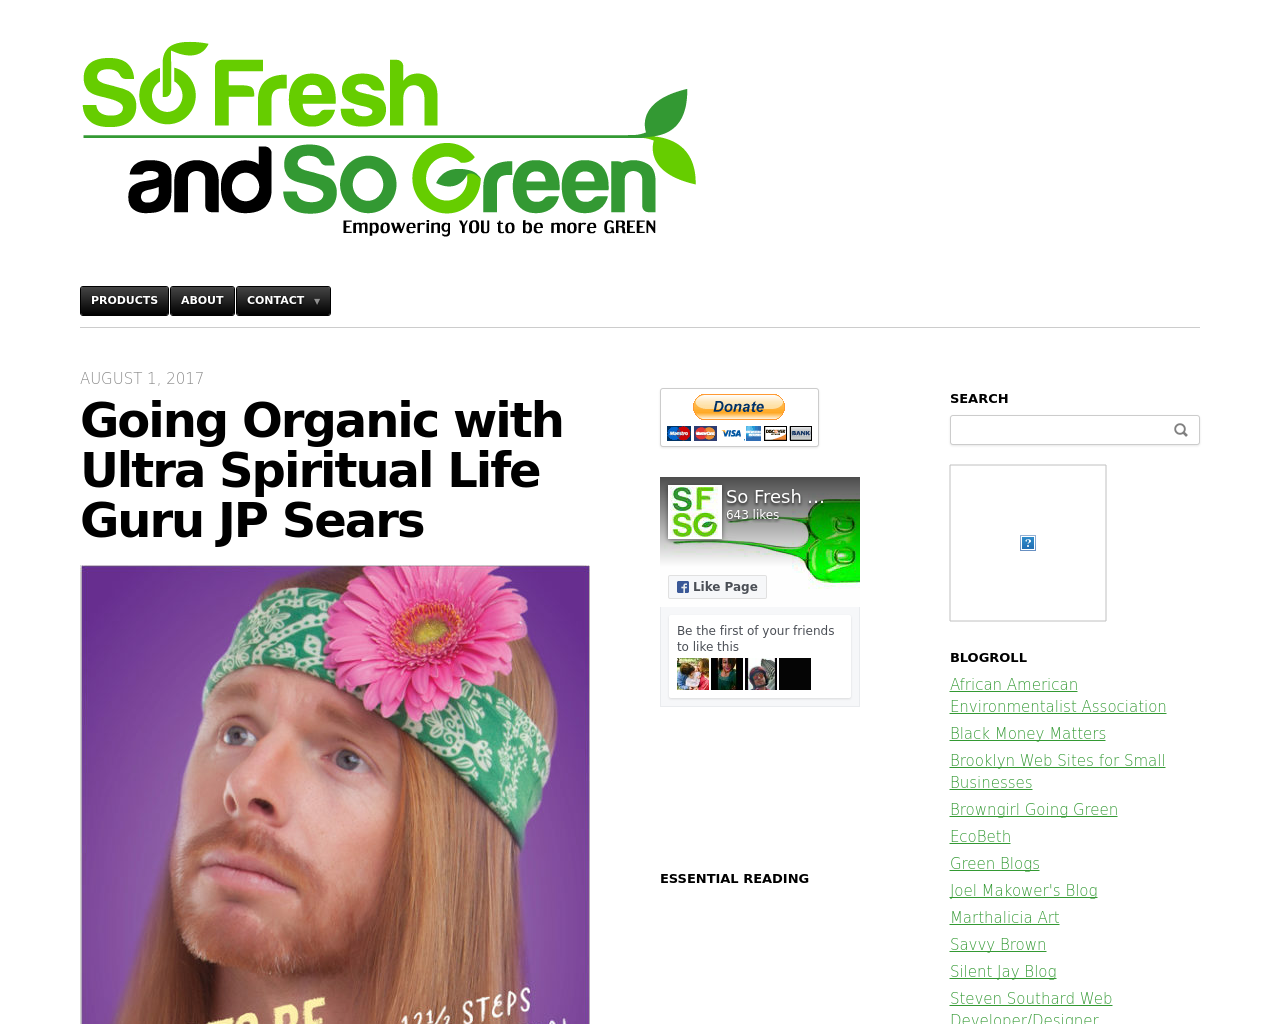 So-Fresh-and-So-Green-Advertising-Reviews-Pricing